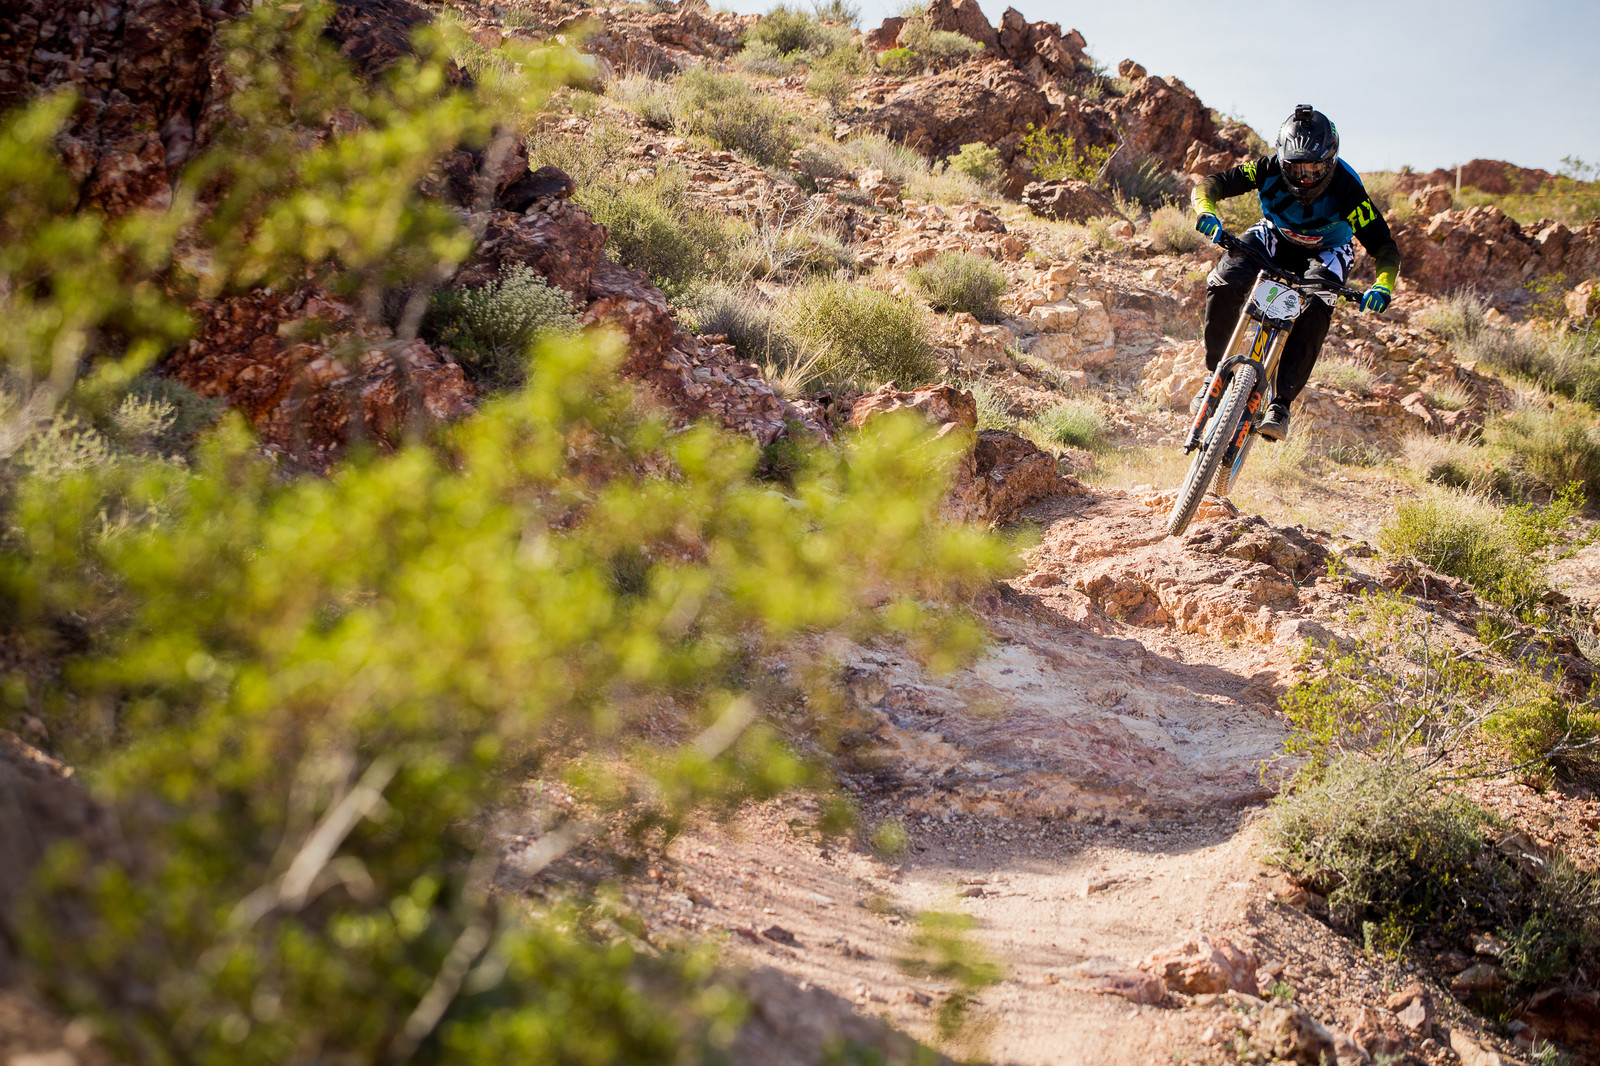 2017 Reaper Madness DH at Bootleg Canyon-12 - 2017 Reaper Madness DH Photos - Mountain Biking Pictures - Vital MTB